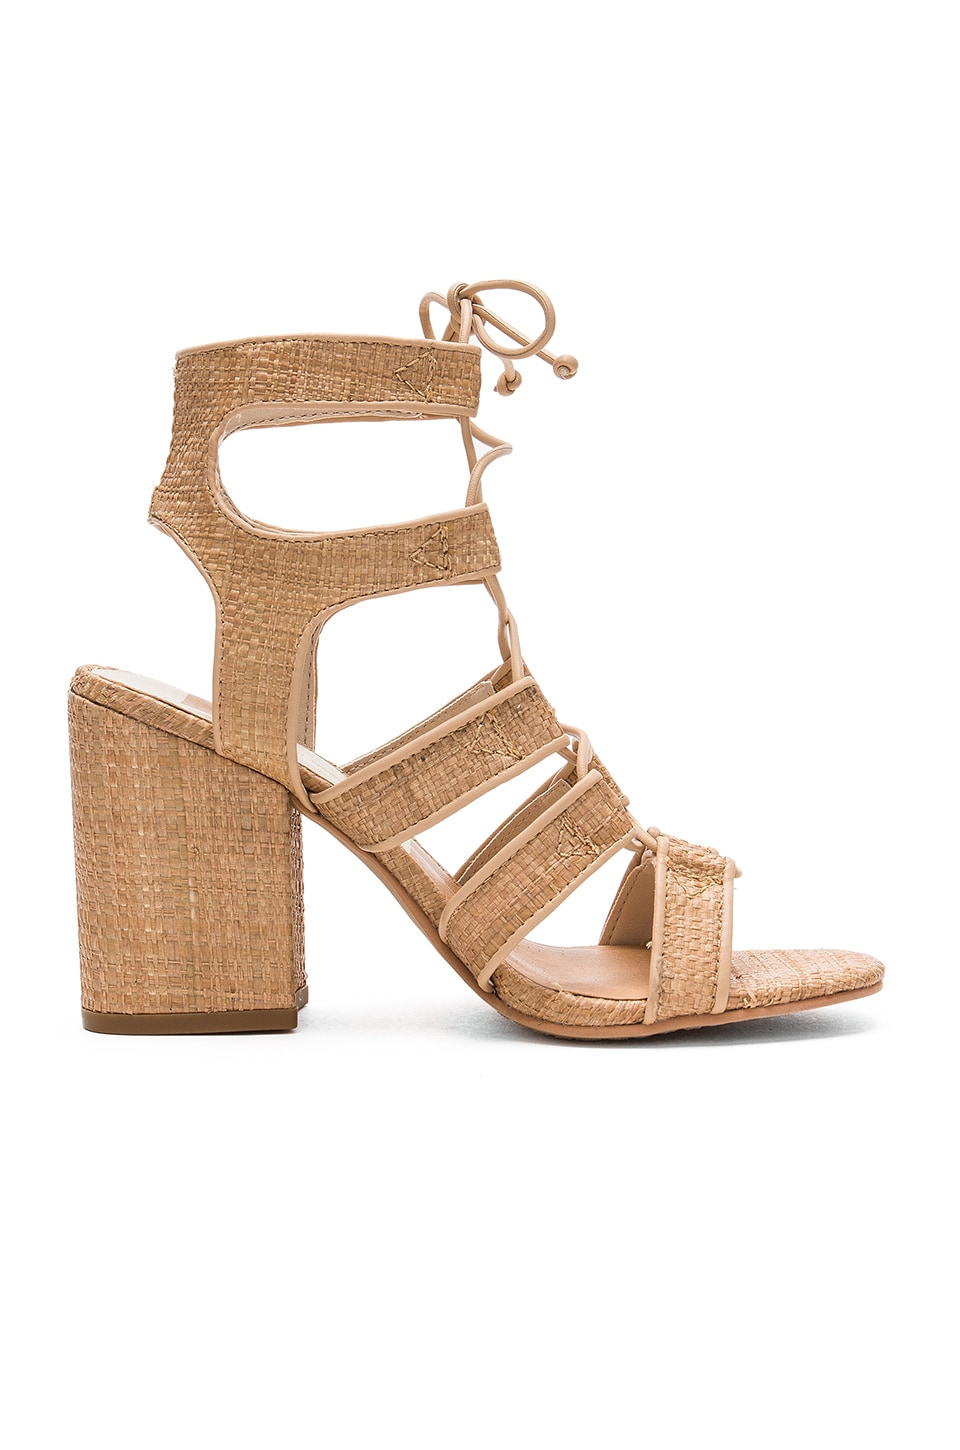 Dolce Vita Eva Heel in Natural